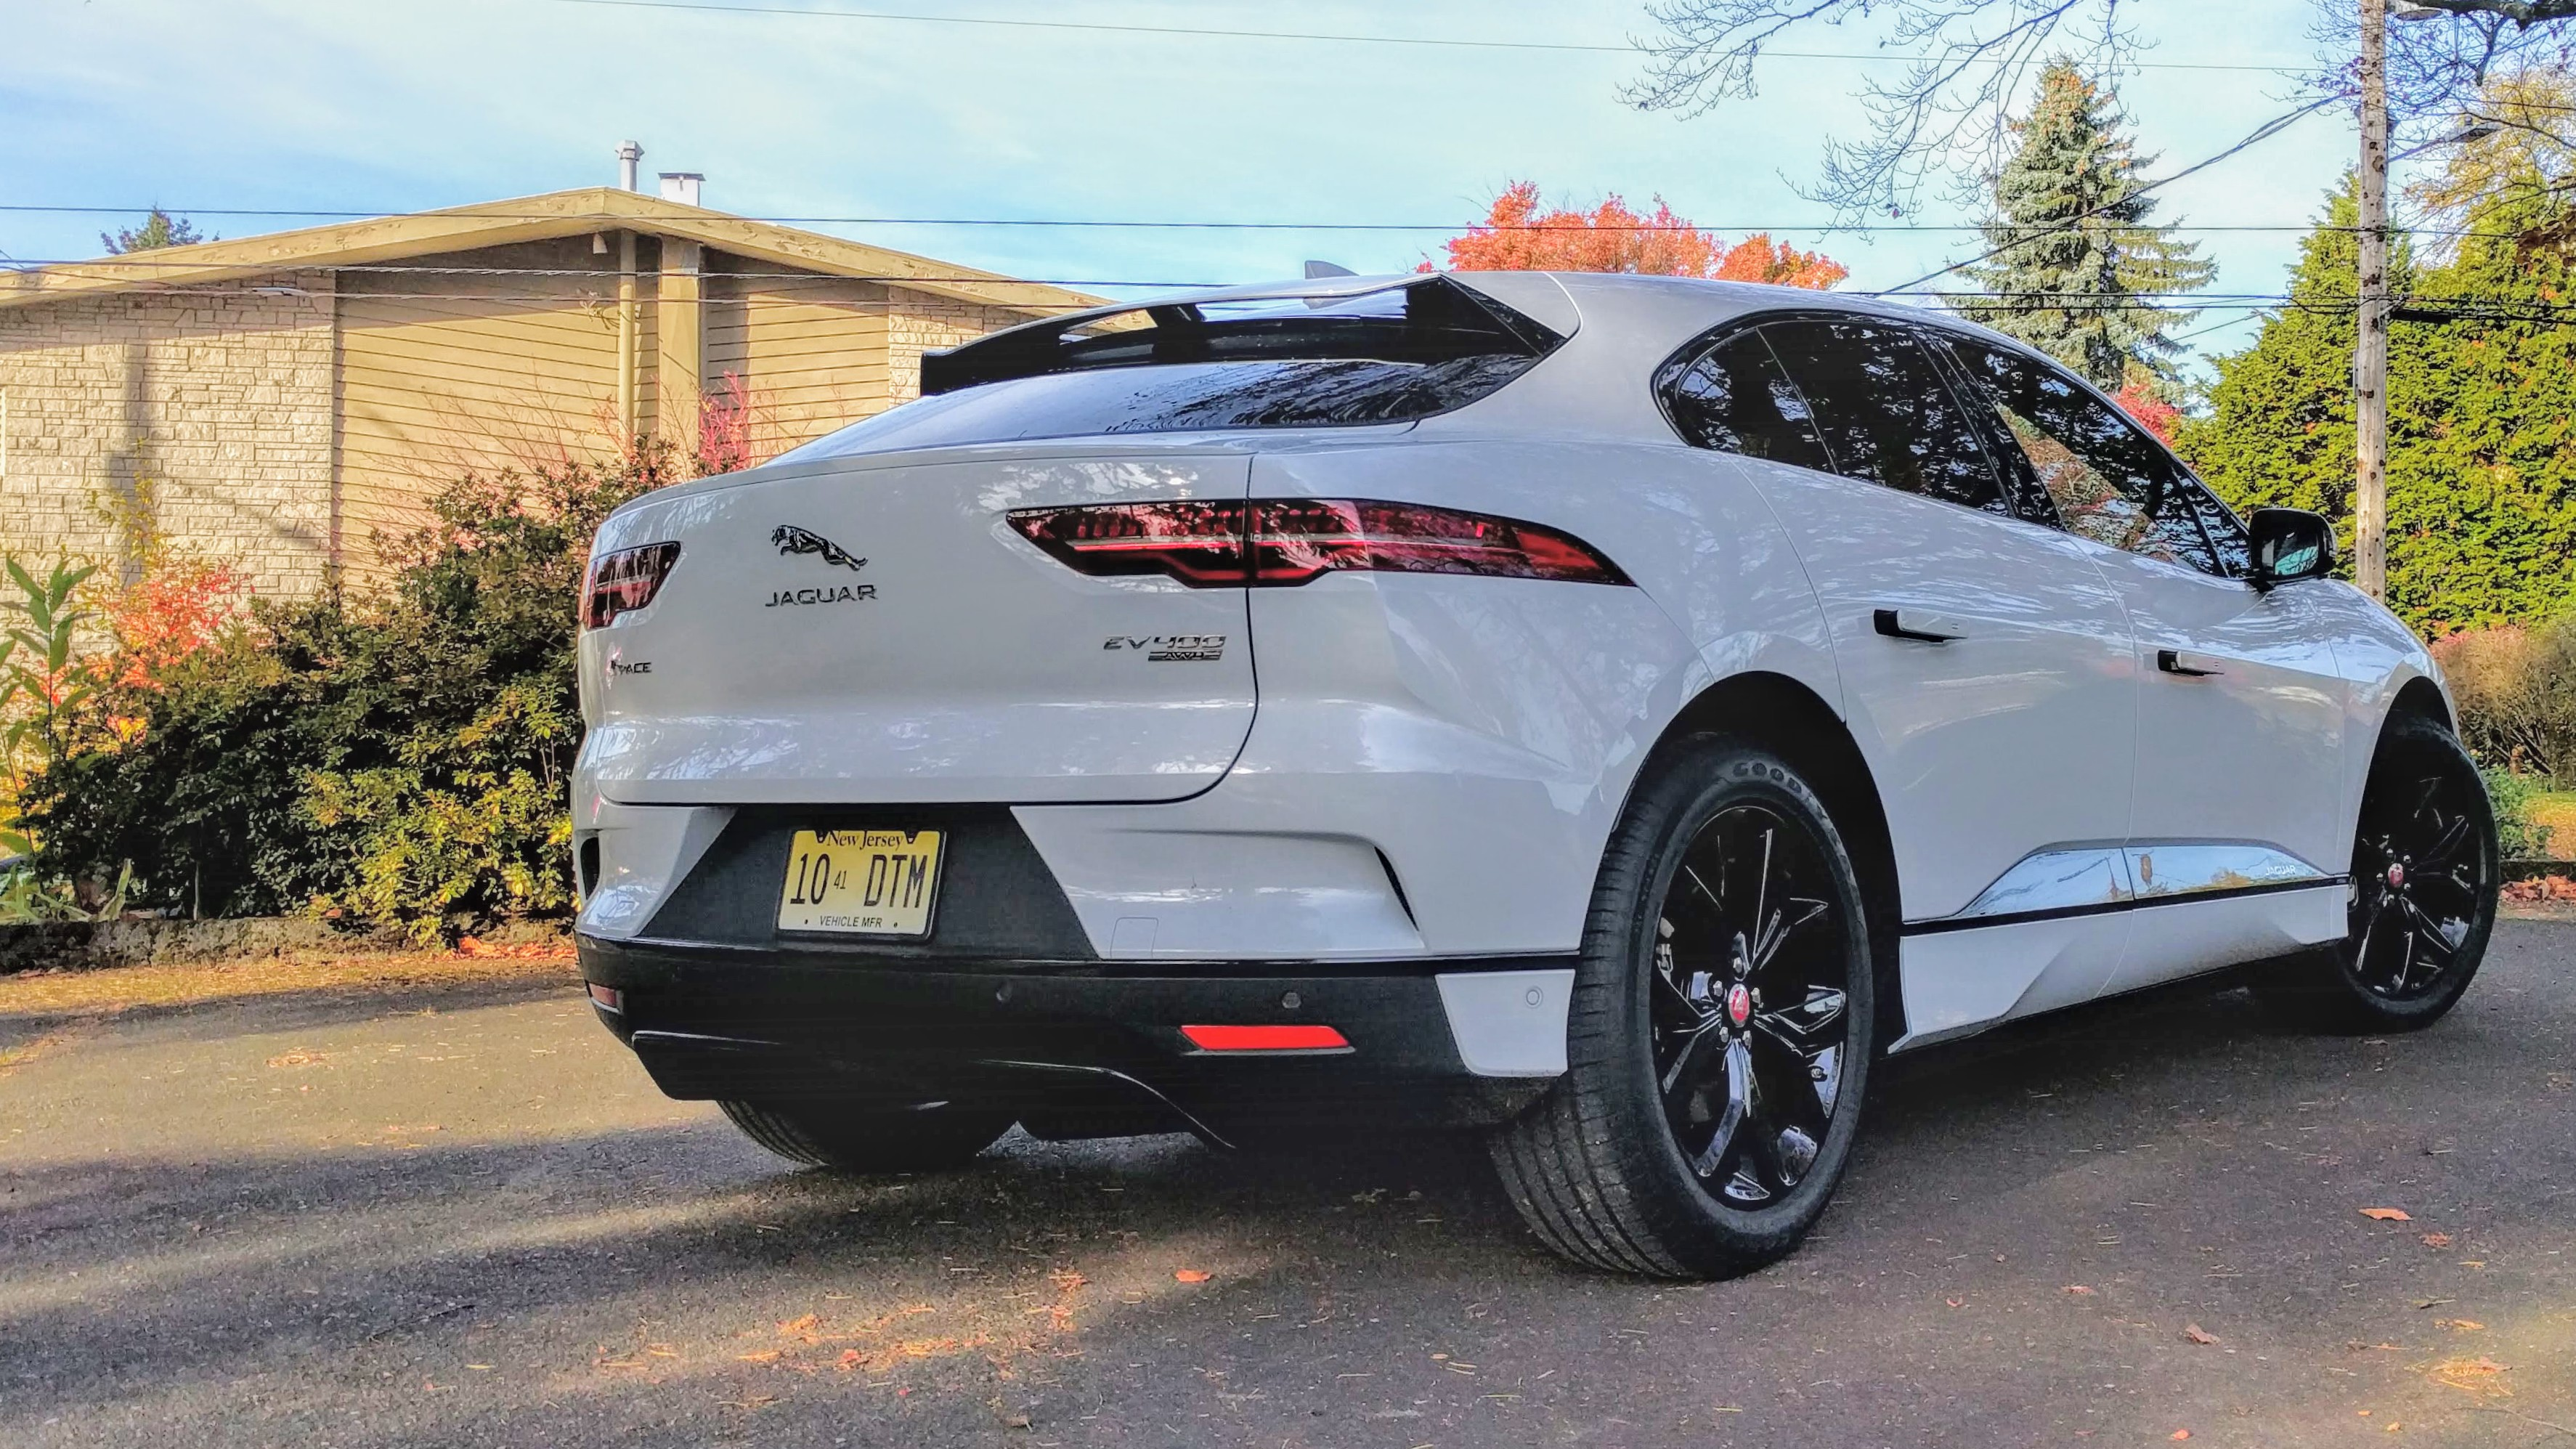 2019 Jaguar I Pace Electric Car Range Why The Short Circuit